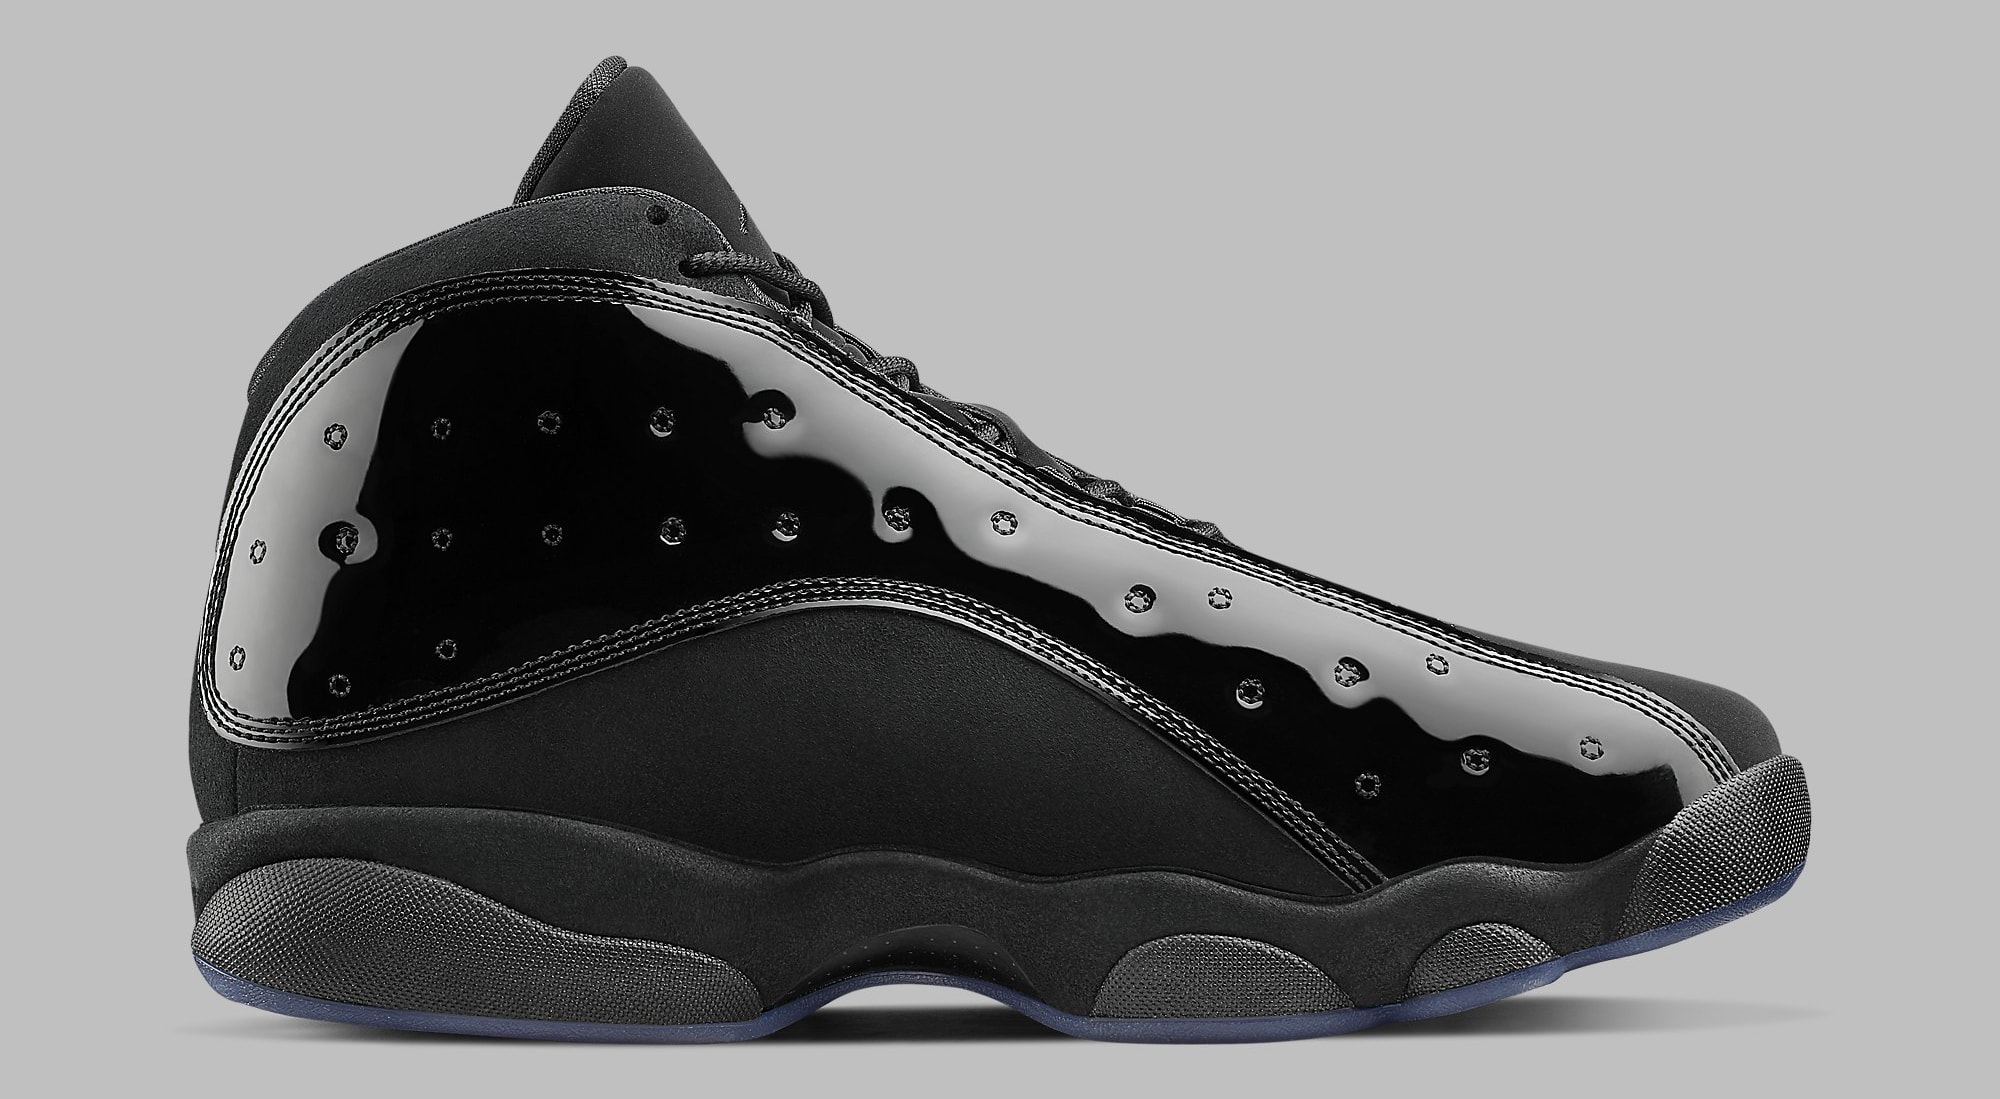 5f05251171ec Image via Nike Air Jordan 13 Retro  Cap and Gown  414571-012 Medial